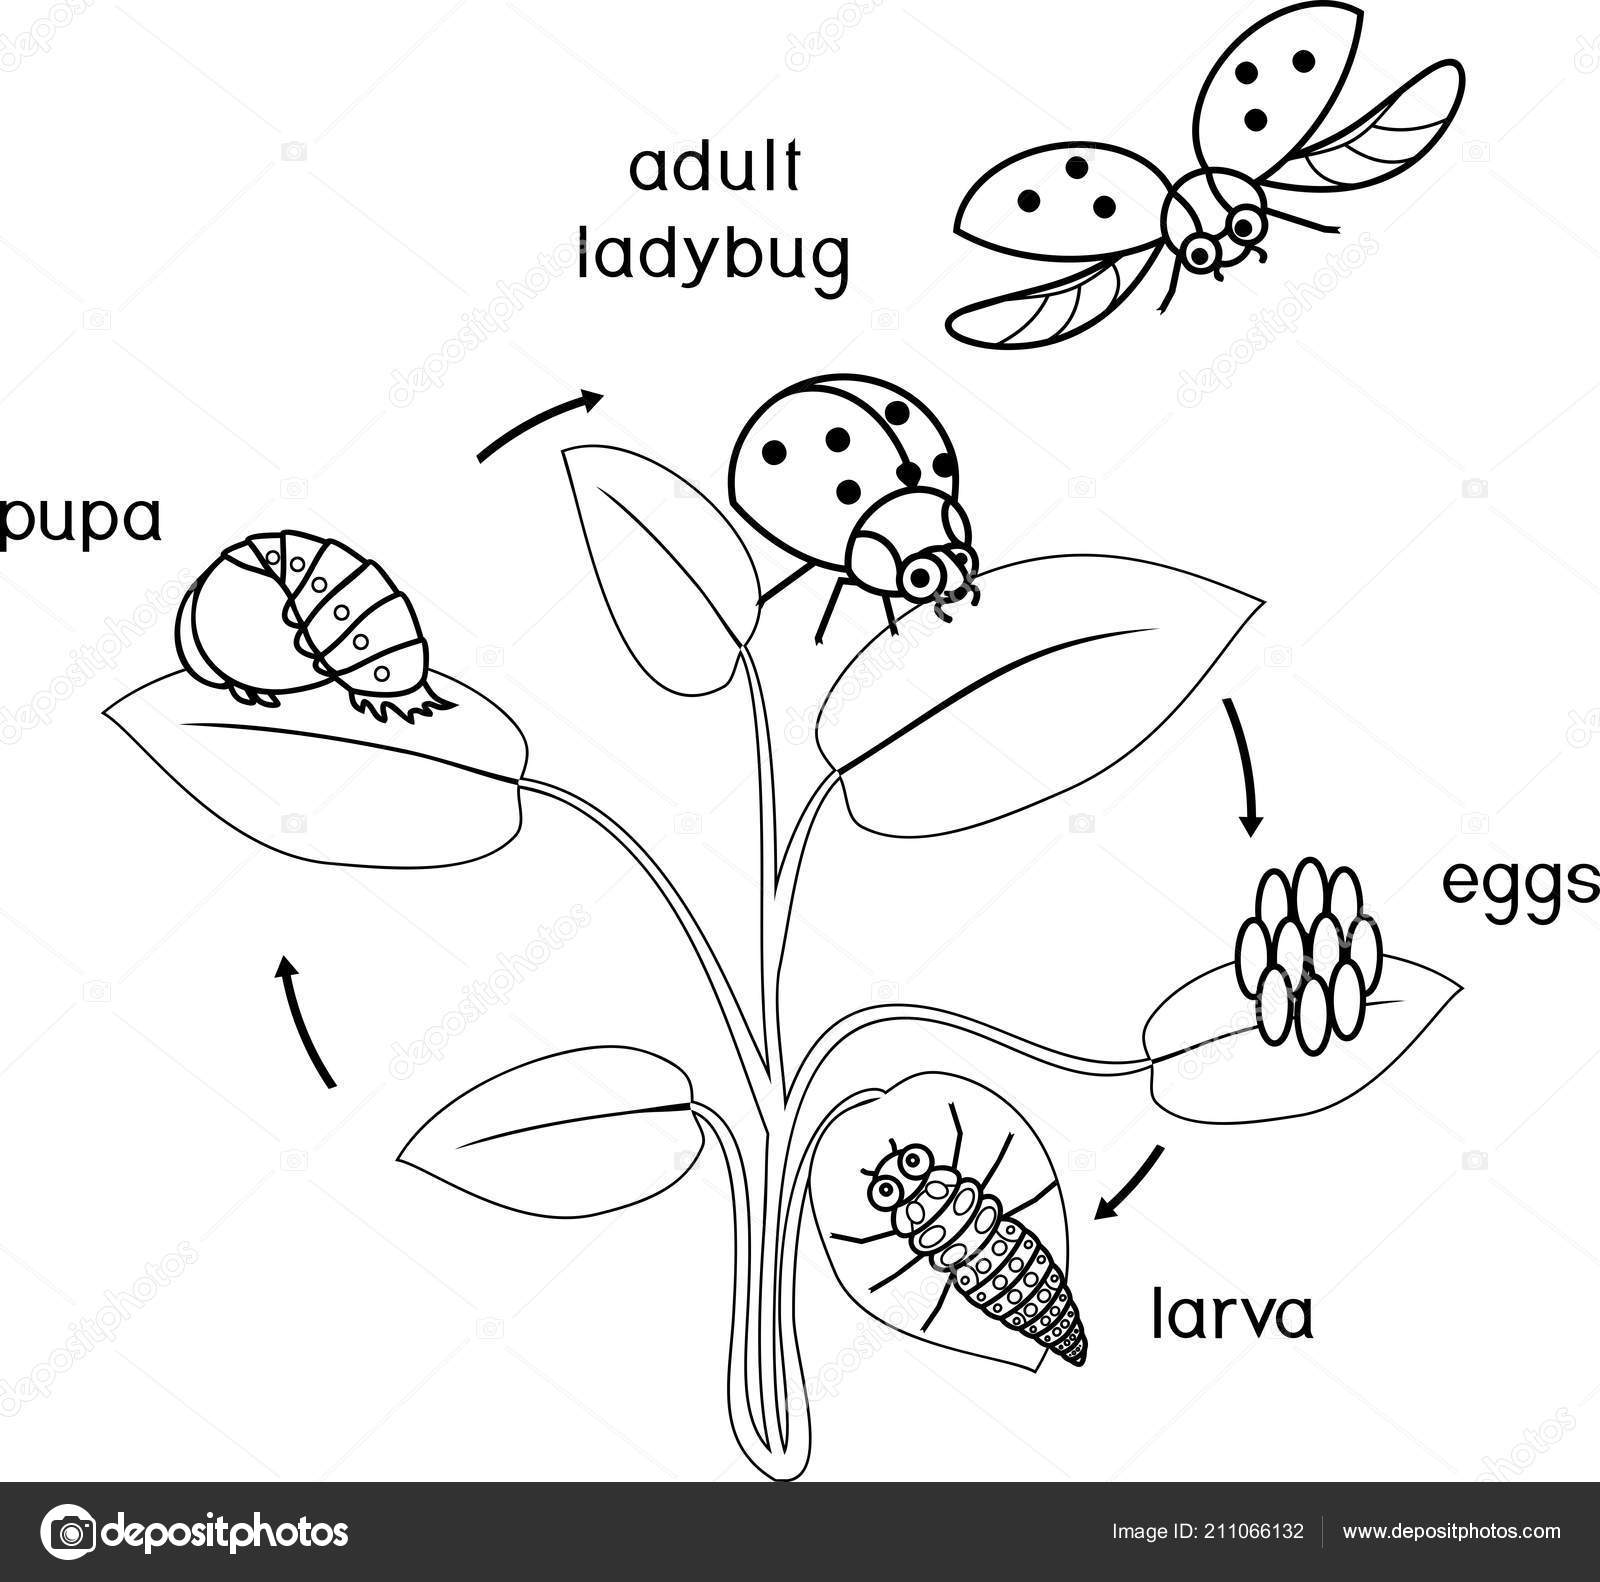 Life Cycle Ladybug Coloring Page Sequence Stages Development Ladybug Egg